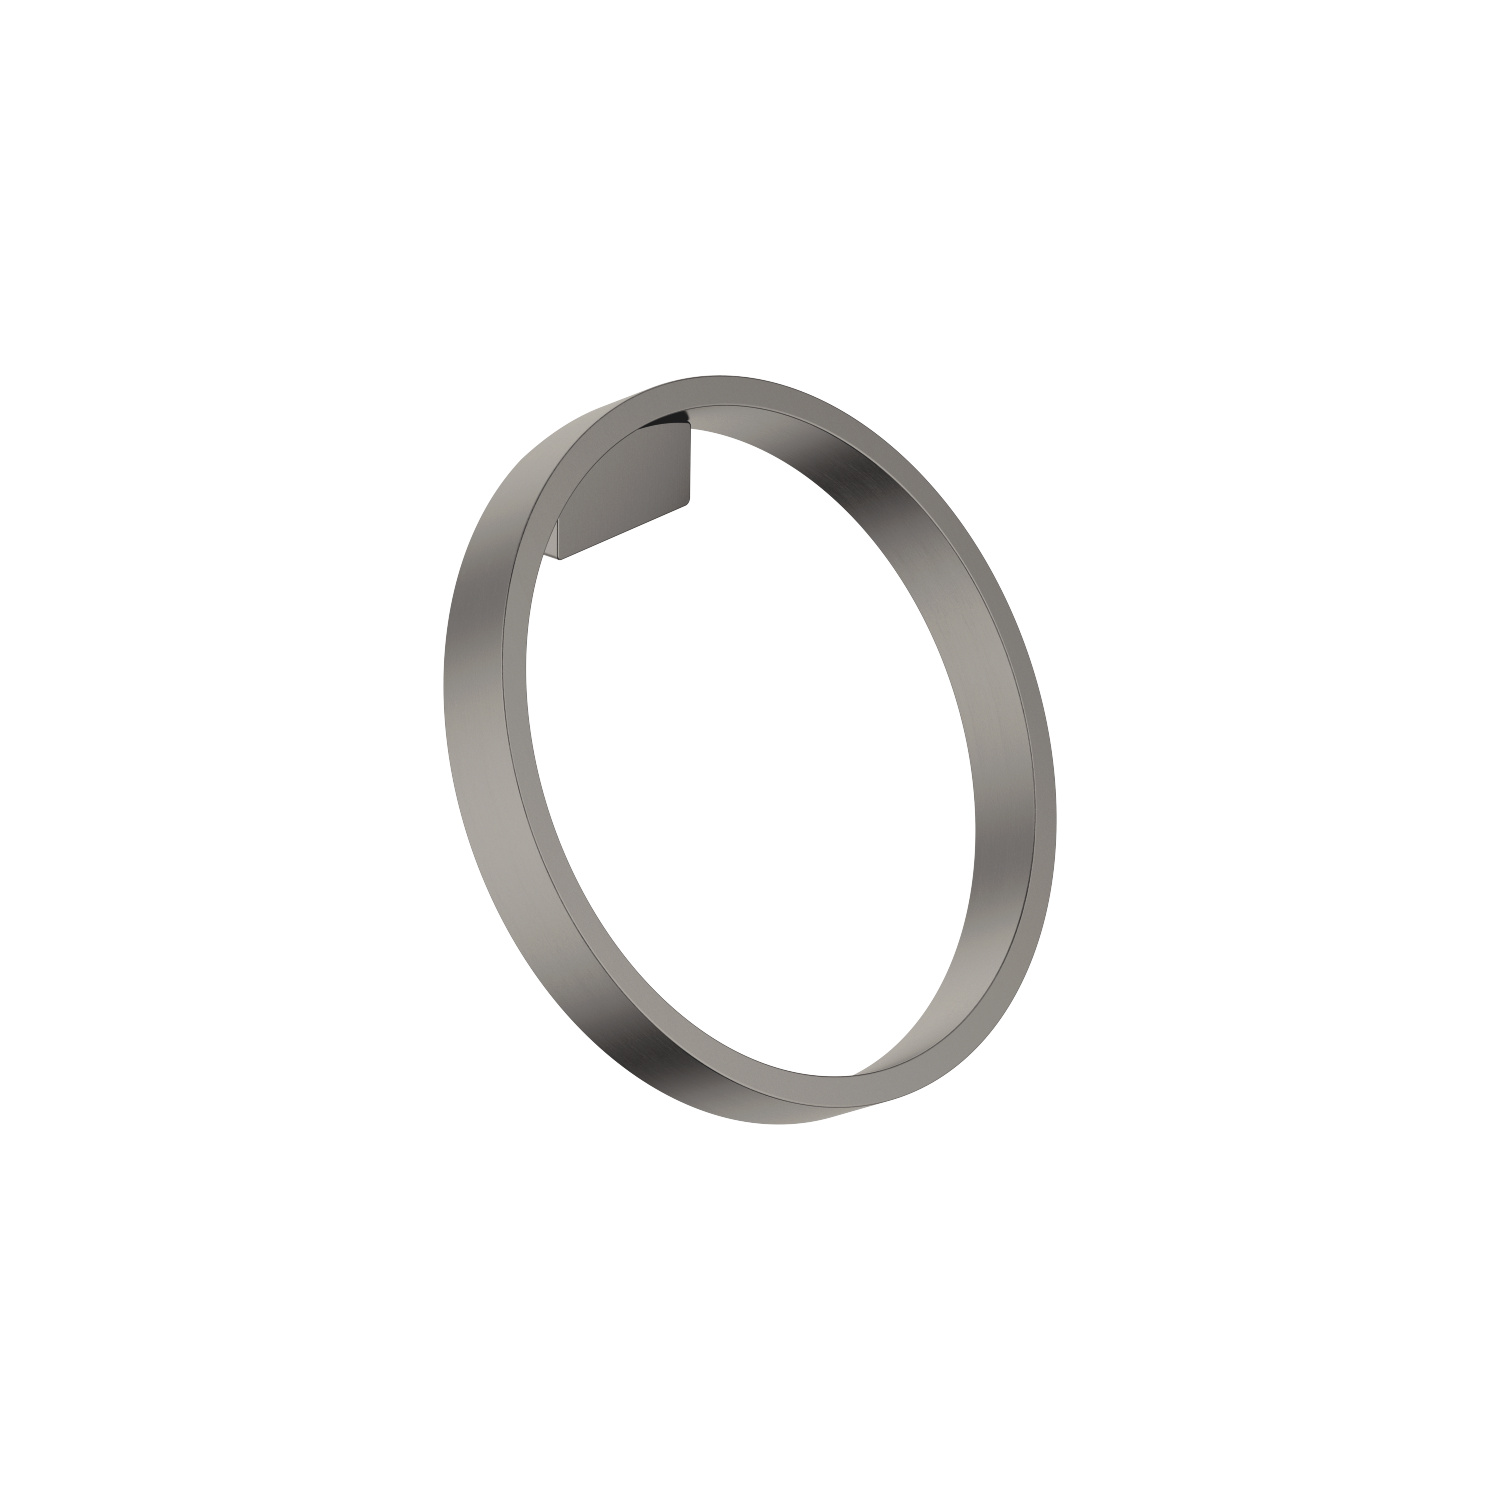 Towel ring round - Dark Platinum matt